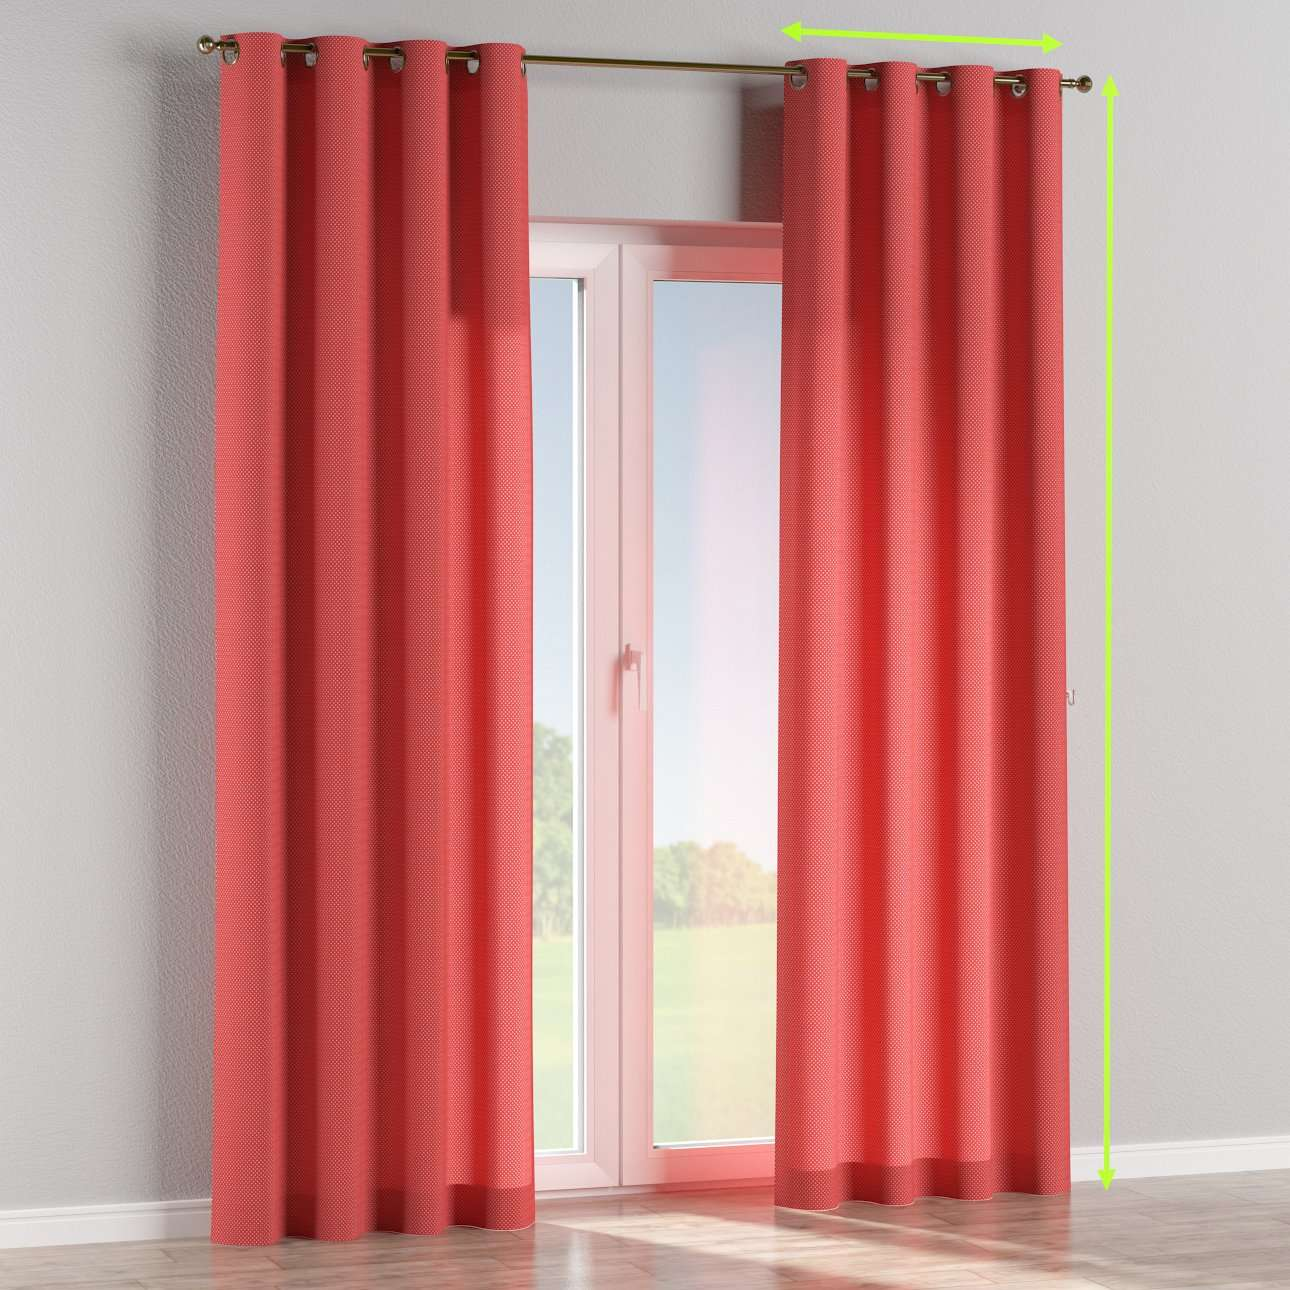 Eyelet lined curtains in collection Ashley, fabric: 137-50